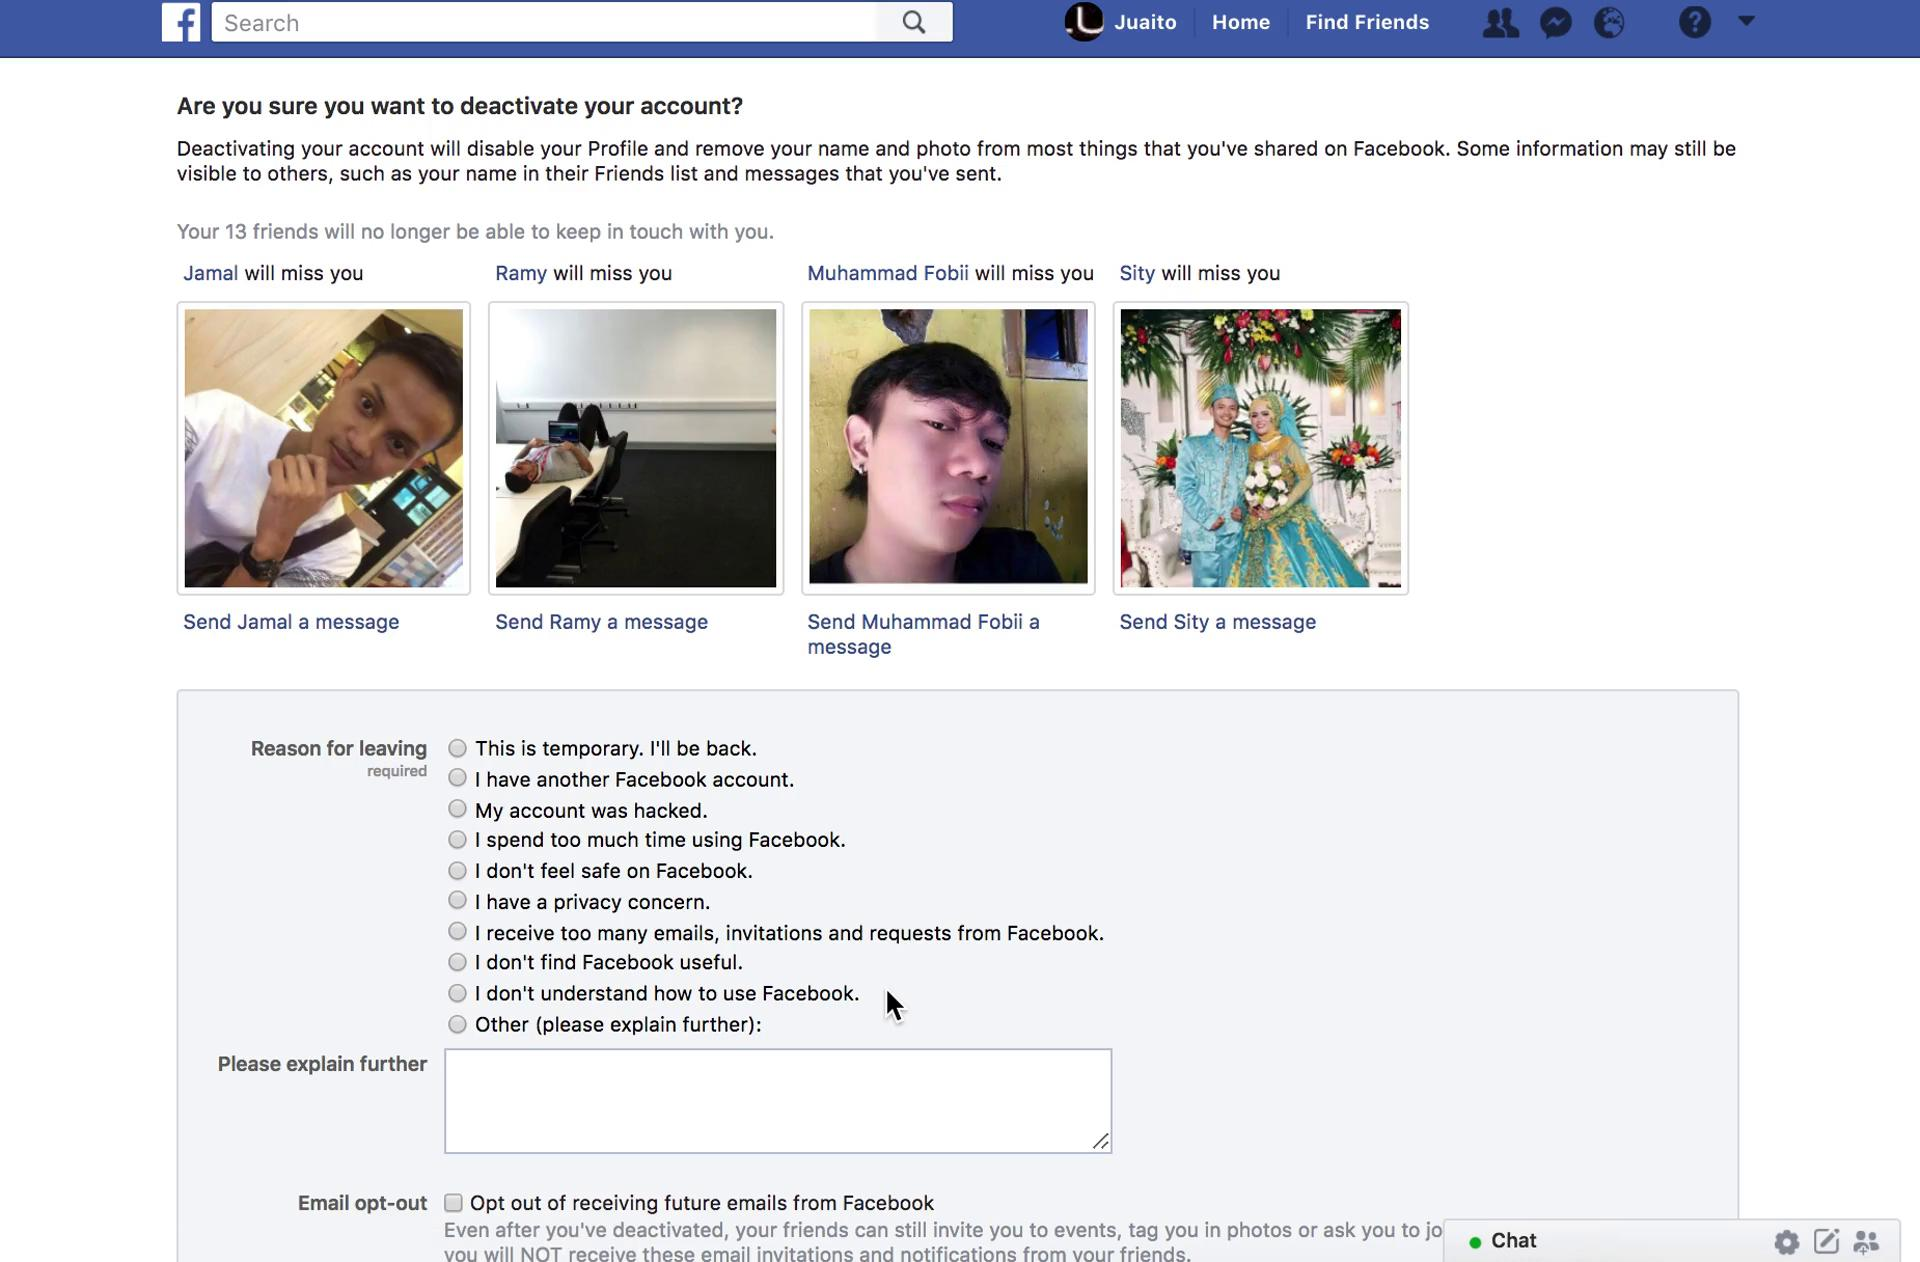 Facebook's account deactivation confirmation page